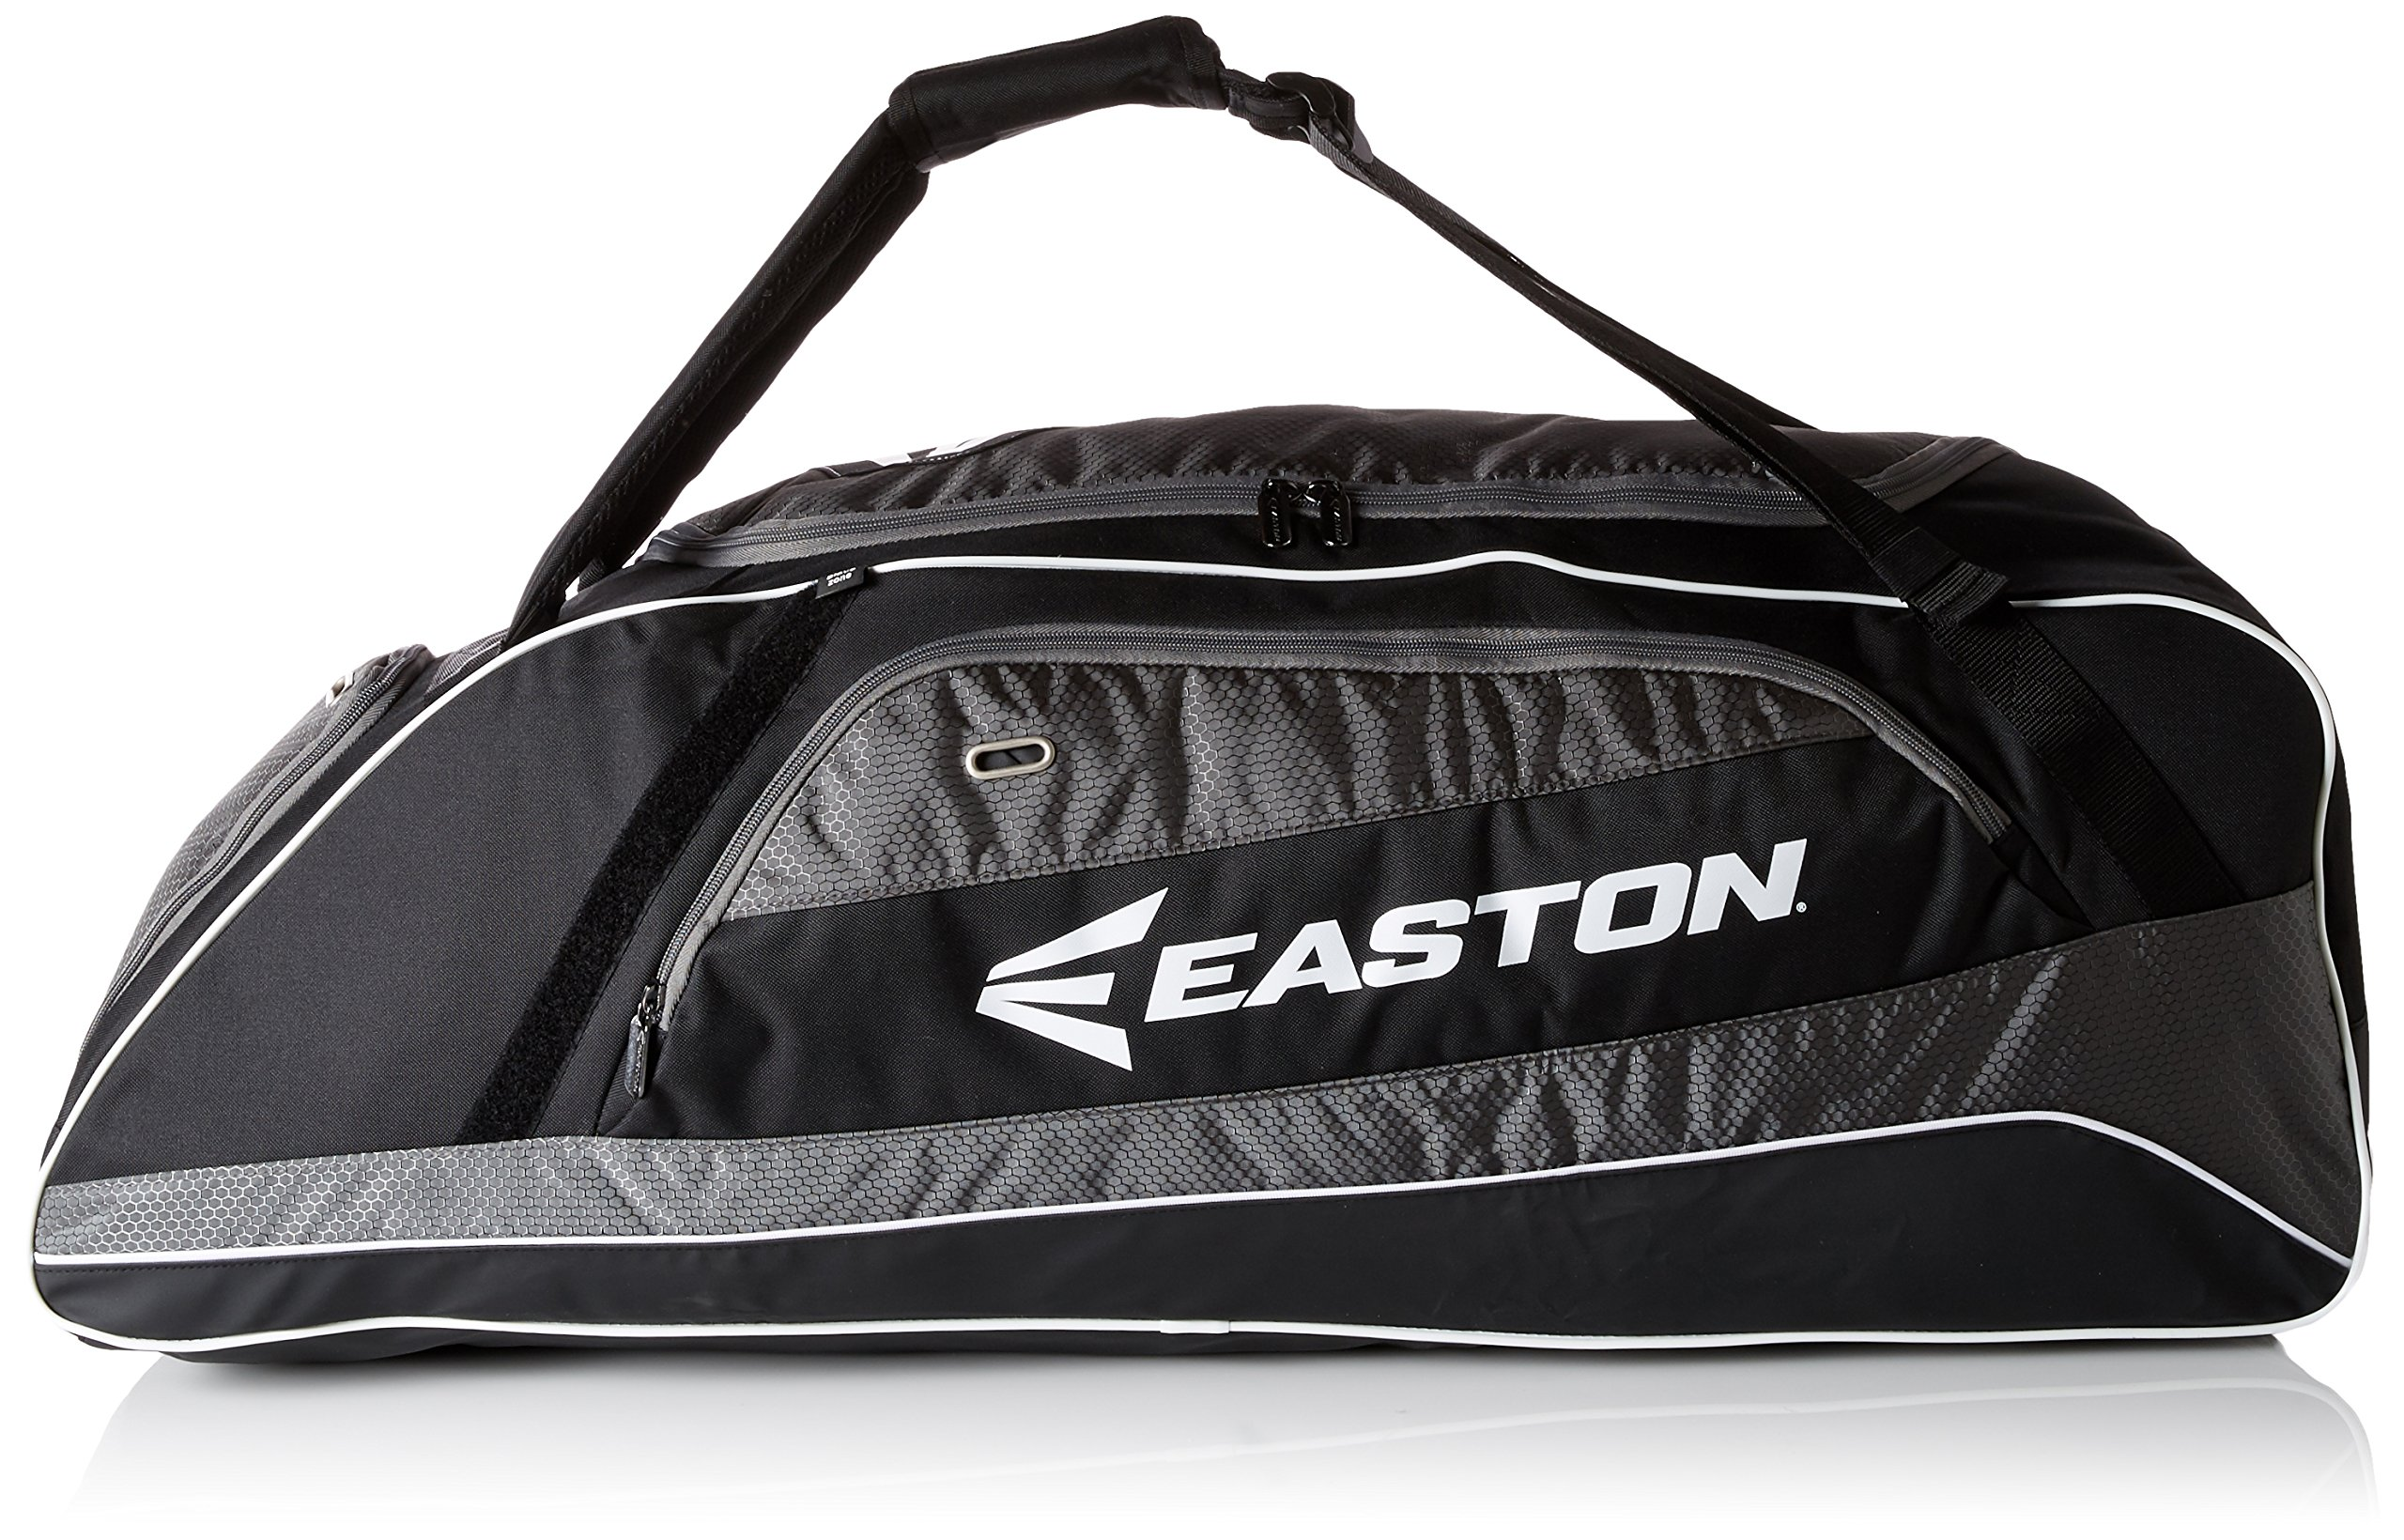 EASTON E500T Bat & Equipment Tote Bag | Baseball Softball | 2019 | Black | 3 Bat Compartment | Vented Pockets | Interior Valuables Pocket | Water Bottle Pocket | Backpack Straps | Fence Hook